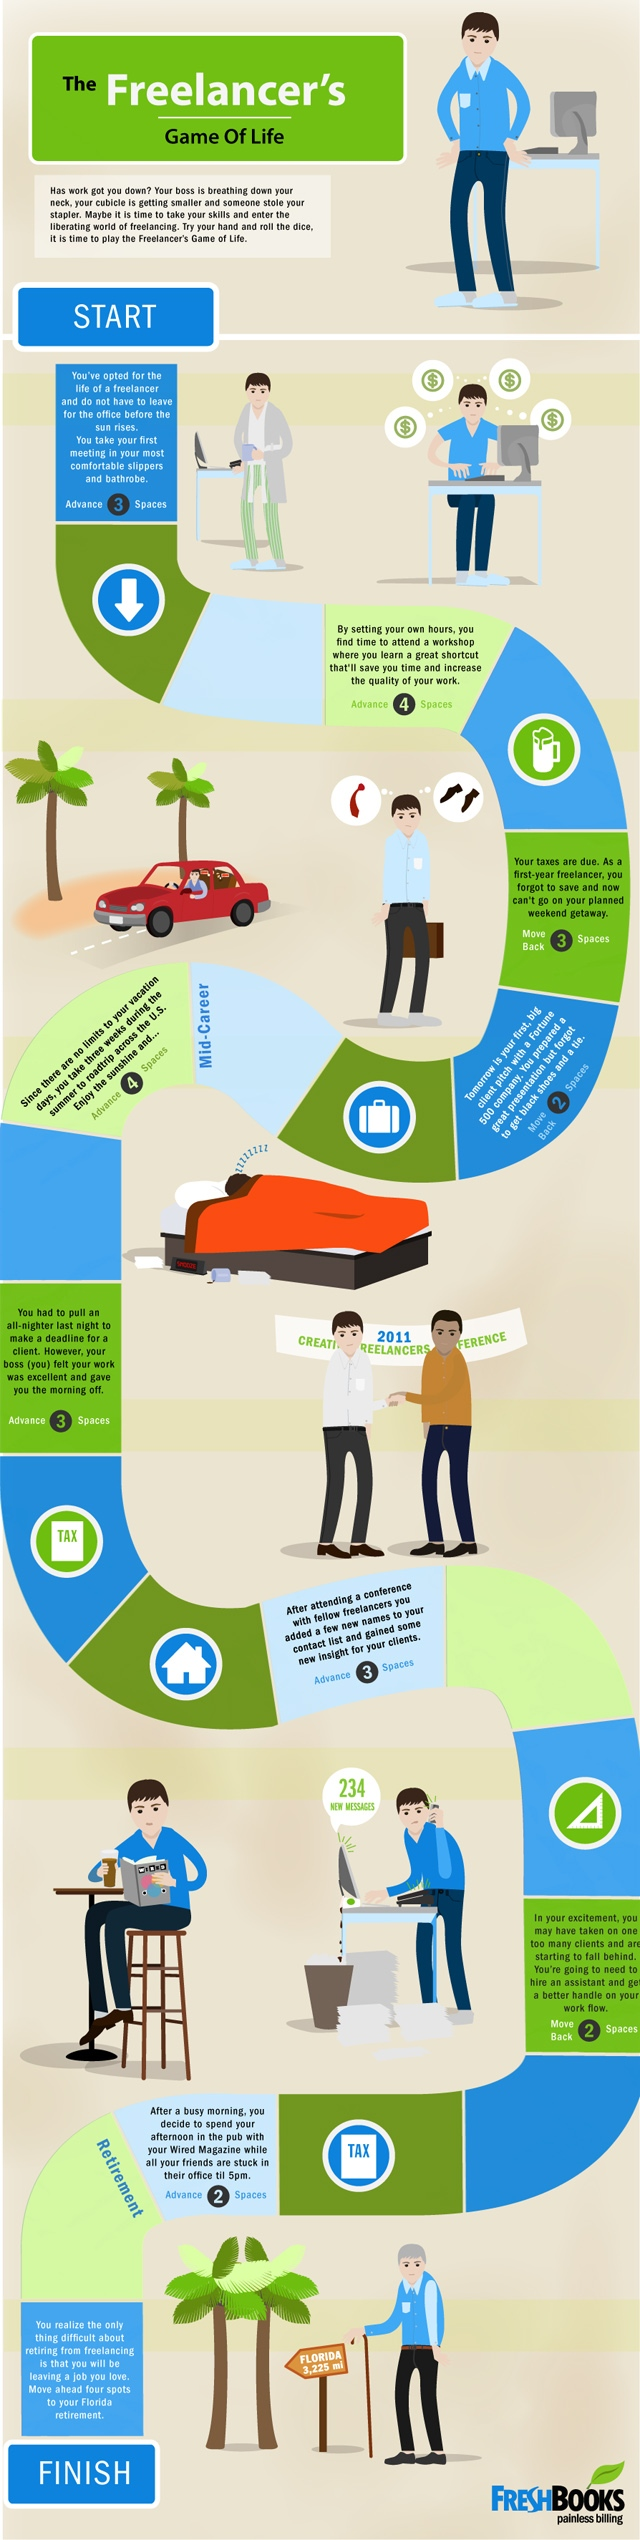 games flowcharts and infographic examples art design code